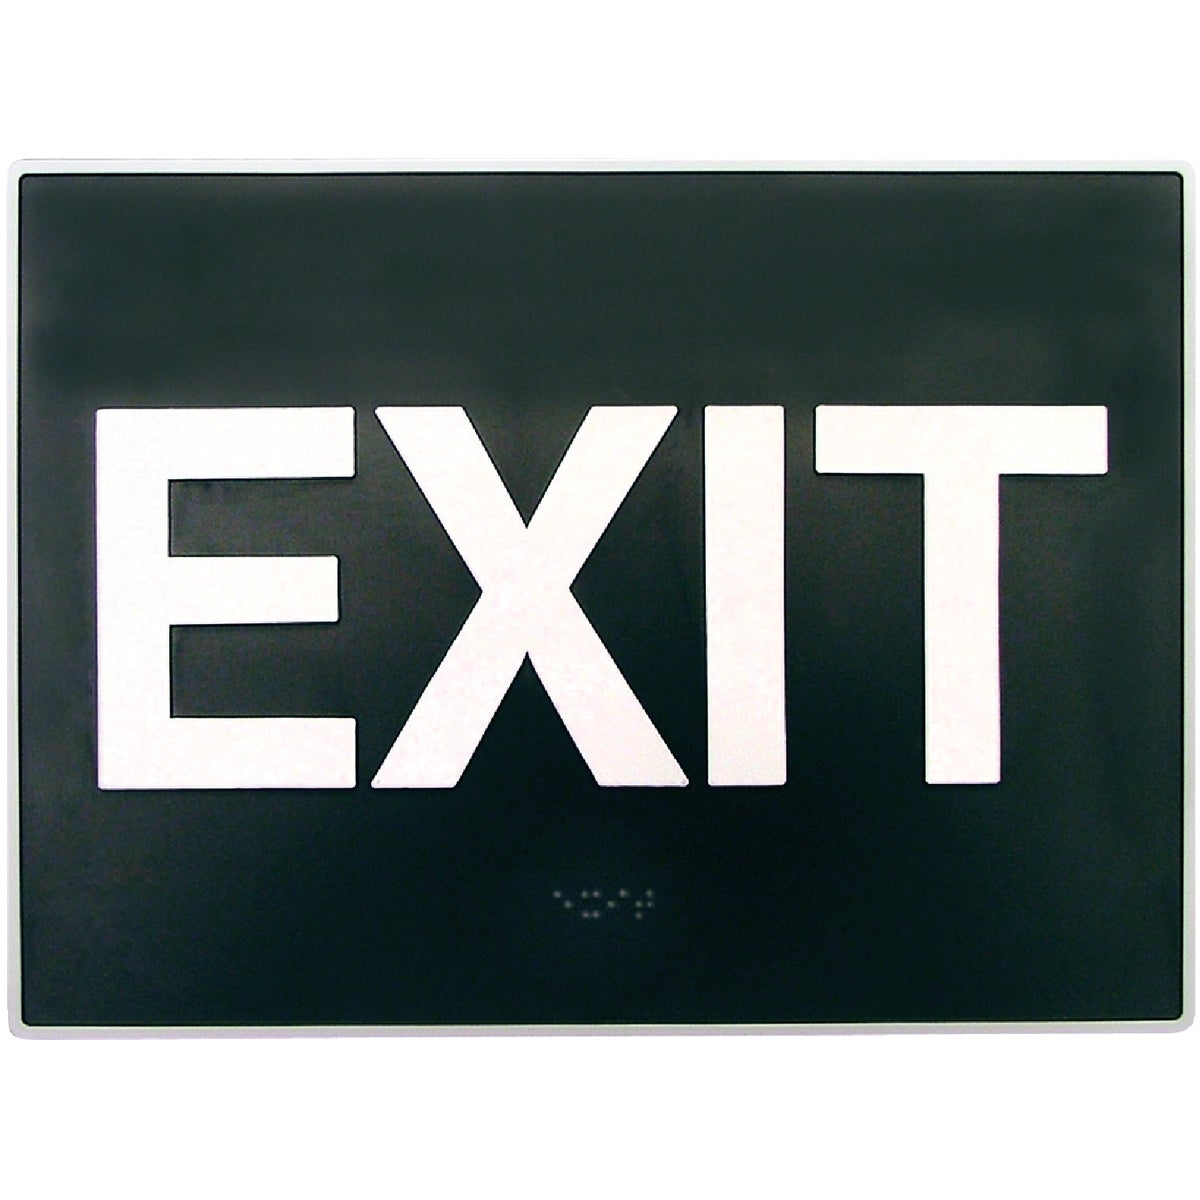 8X11 BRAILLE EXIT SIGN - DB-19 by Hy Ko Prods Co